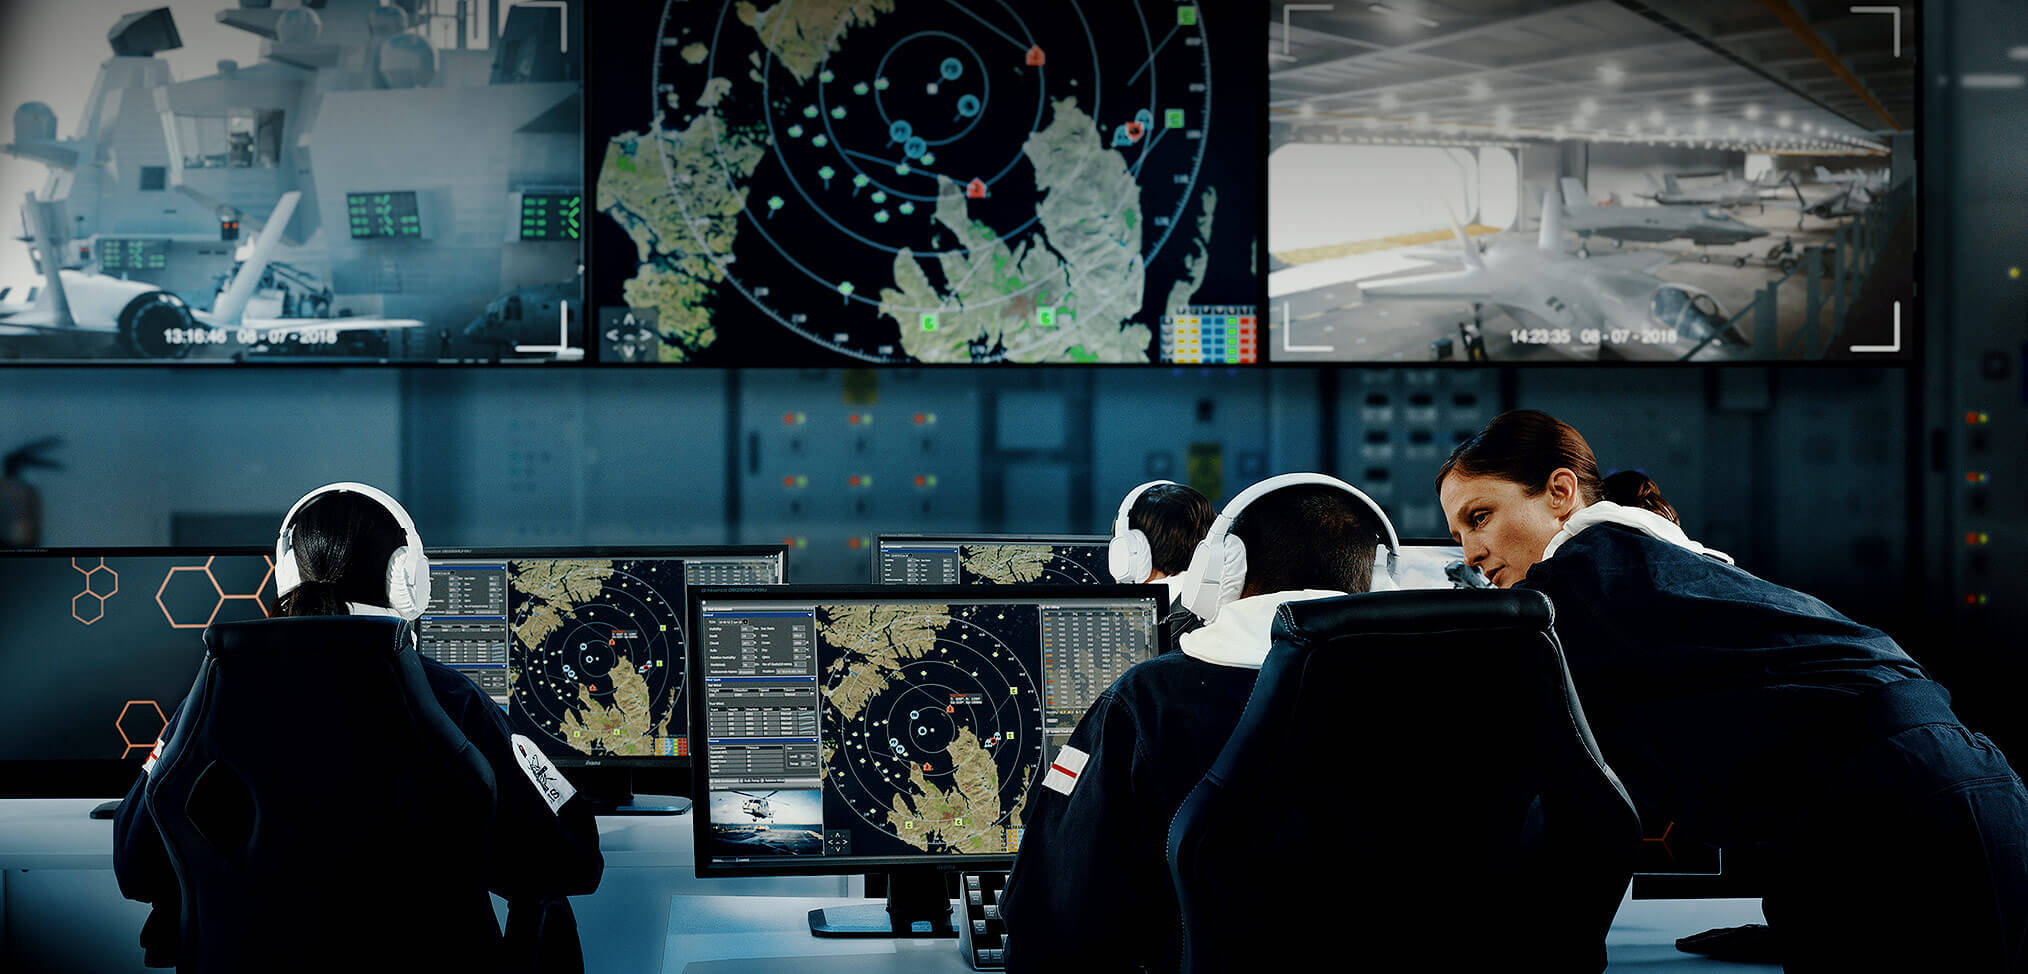 Next generation computing technology for the Royal Navy